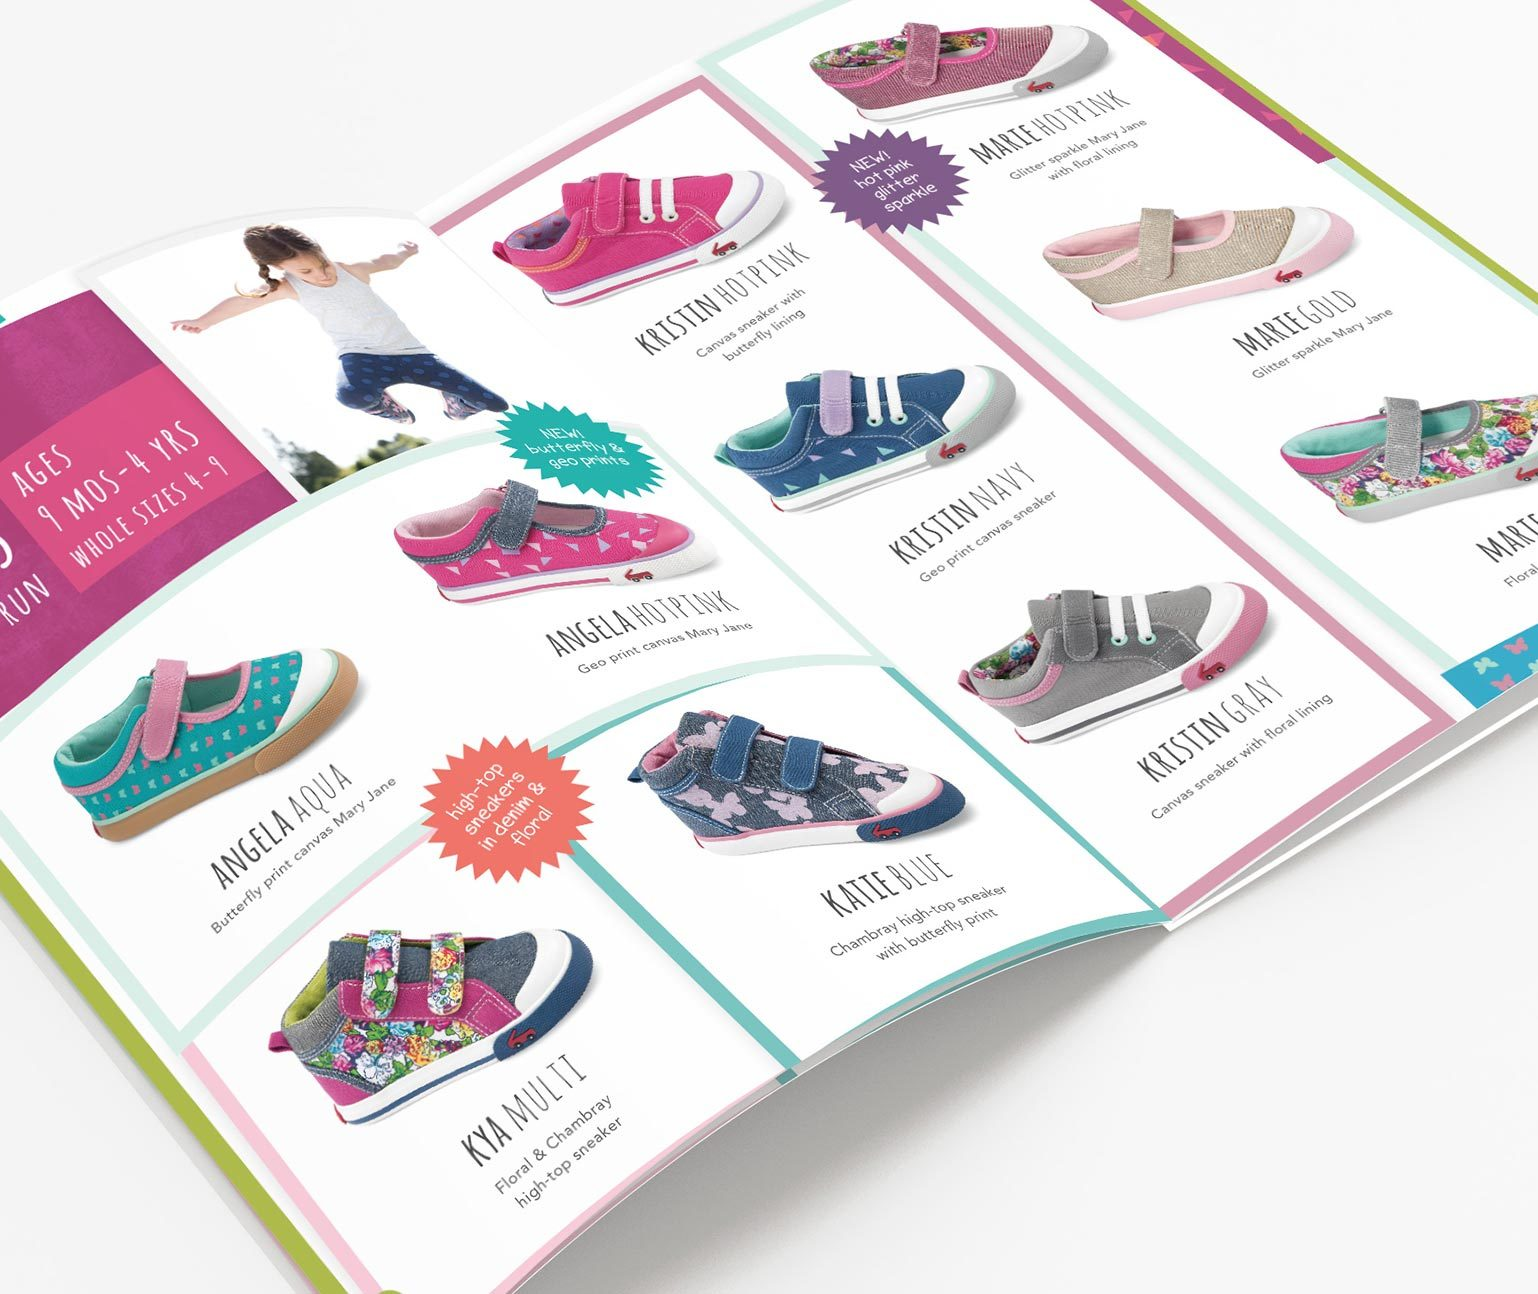 Catalog open spread showing children's shoes